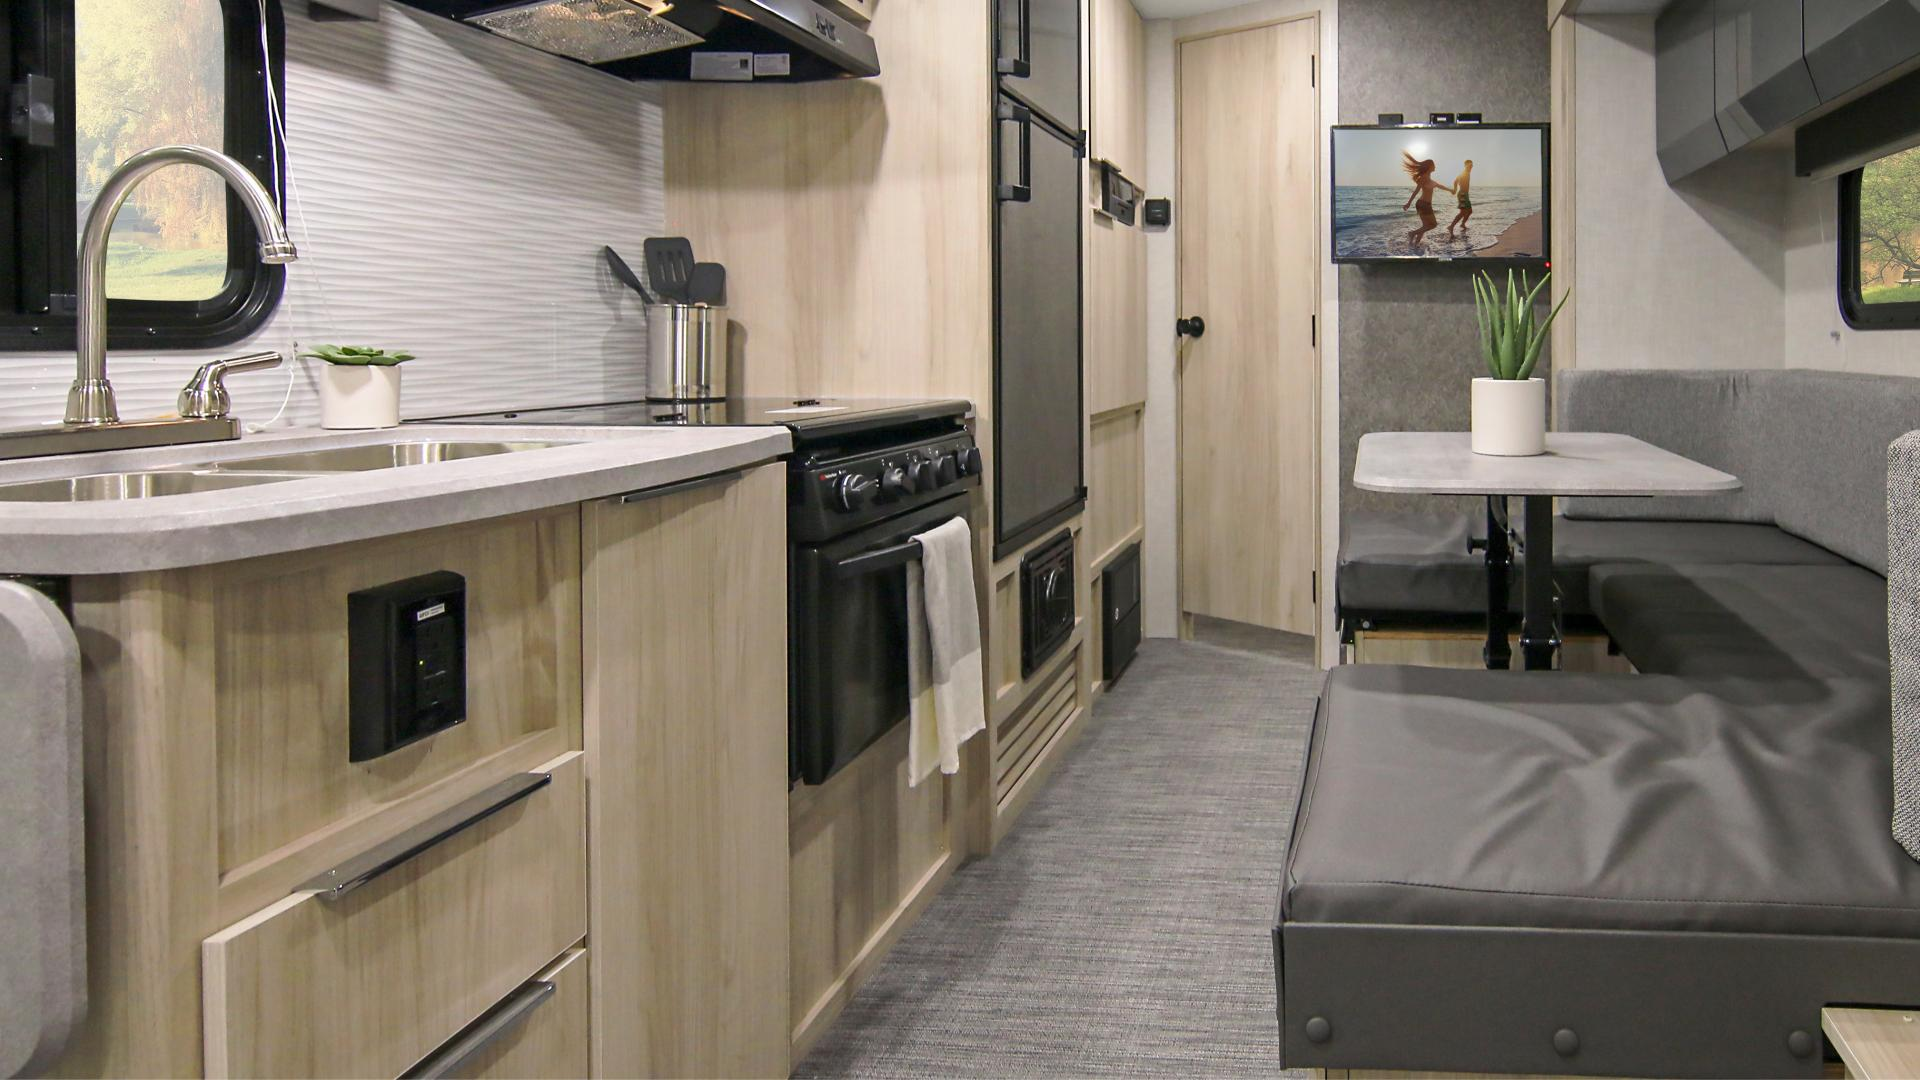 Winnebago Hike interior wide view of the living area, showcasing the galley, dinette and storage